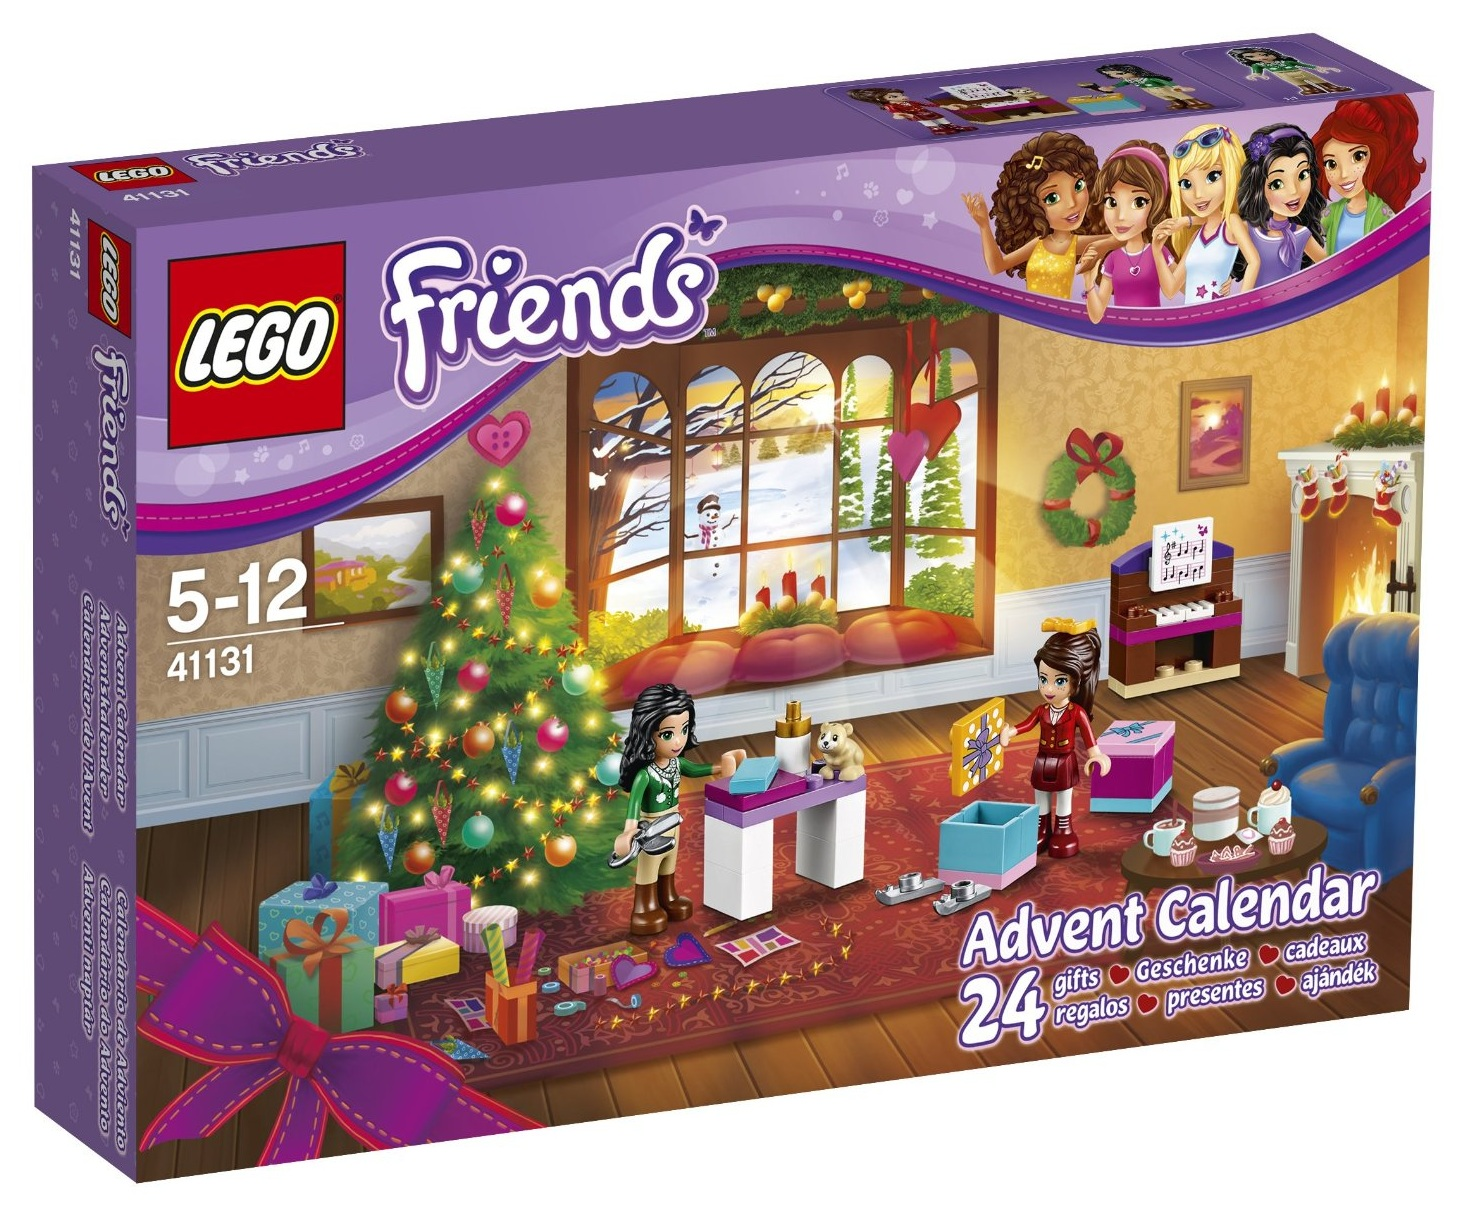 friends 2016 advent calendar